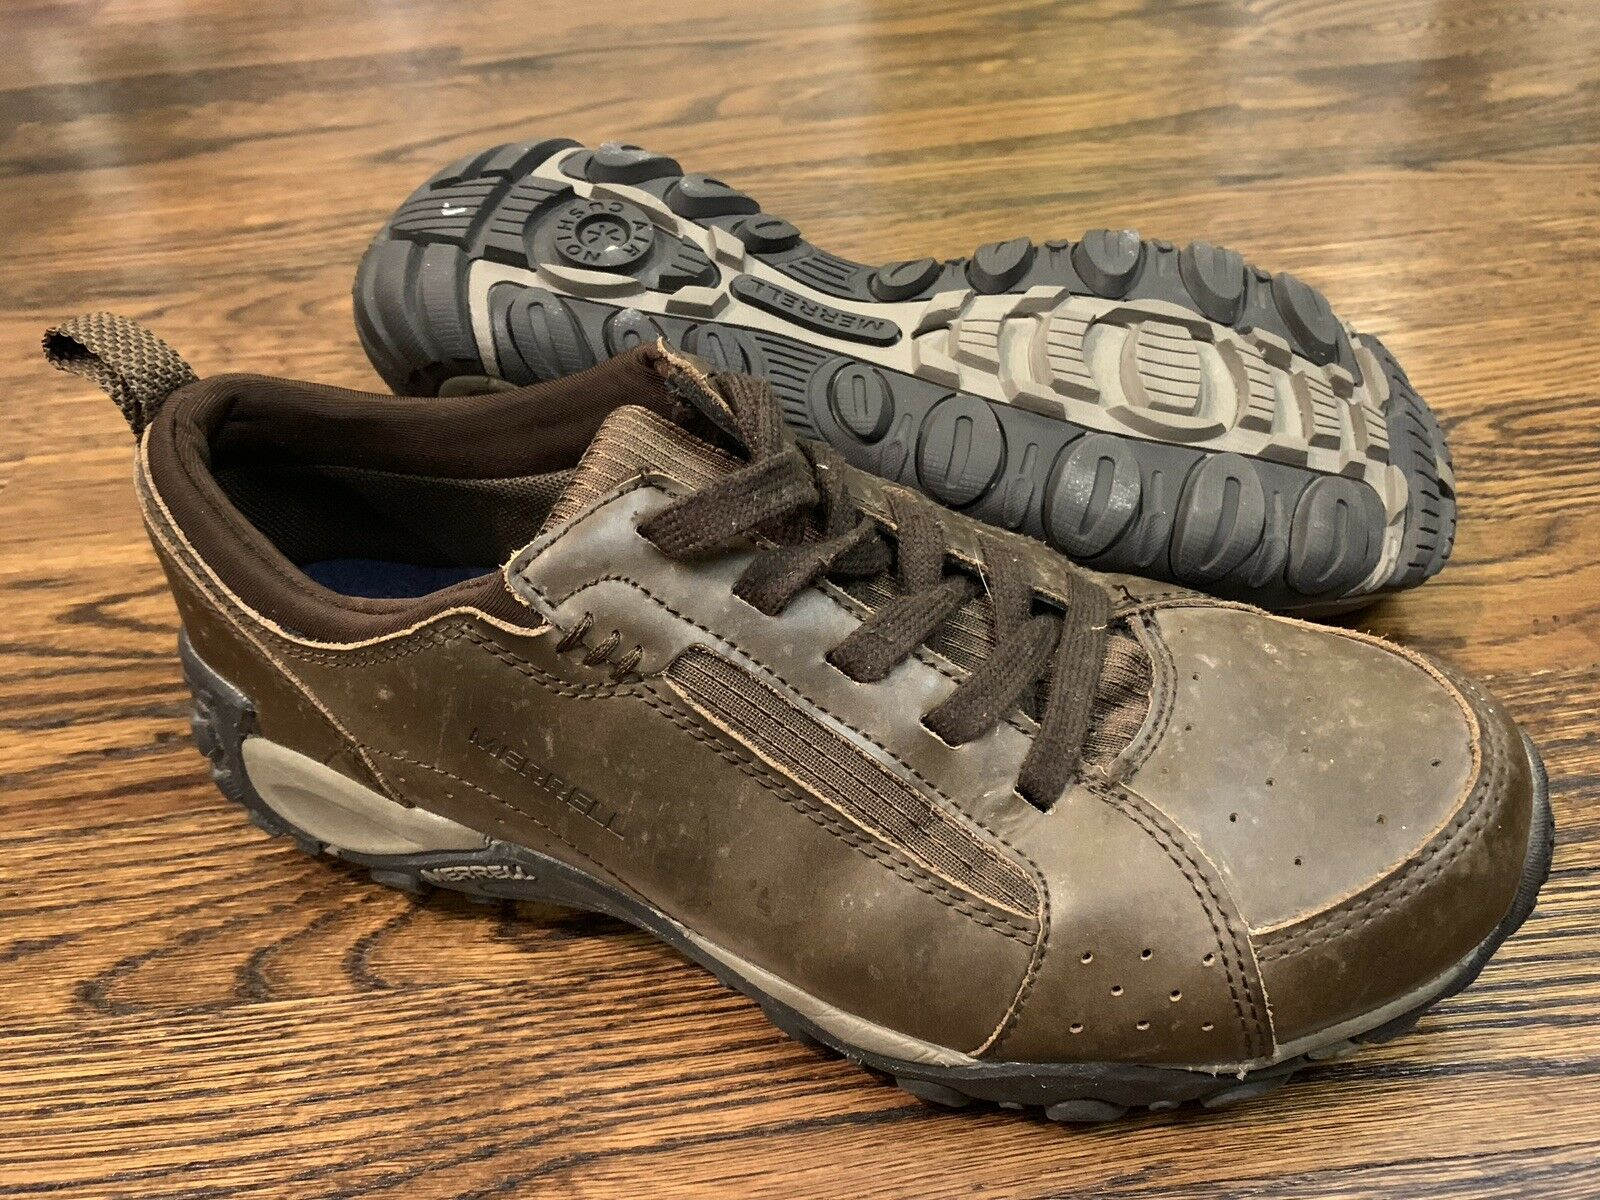 Men's MERRELL BELLOT Dark Earth Brown Leather Sneakers shoes Size 9.5